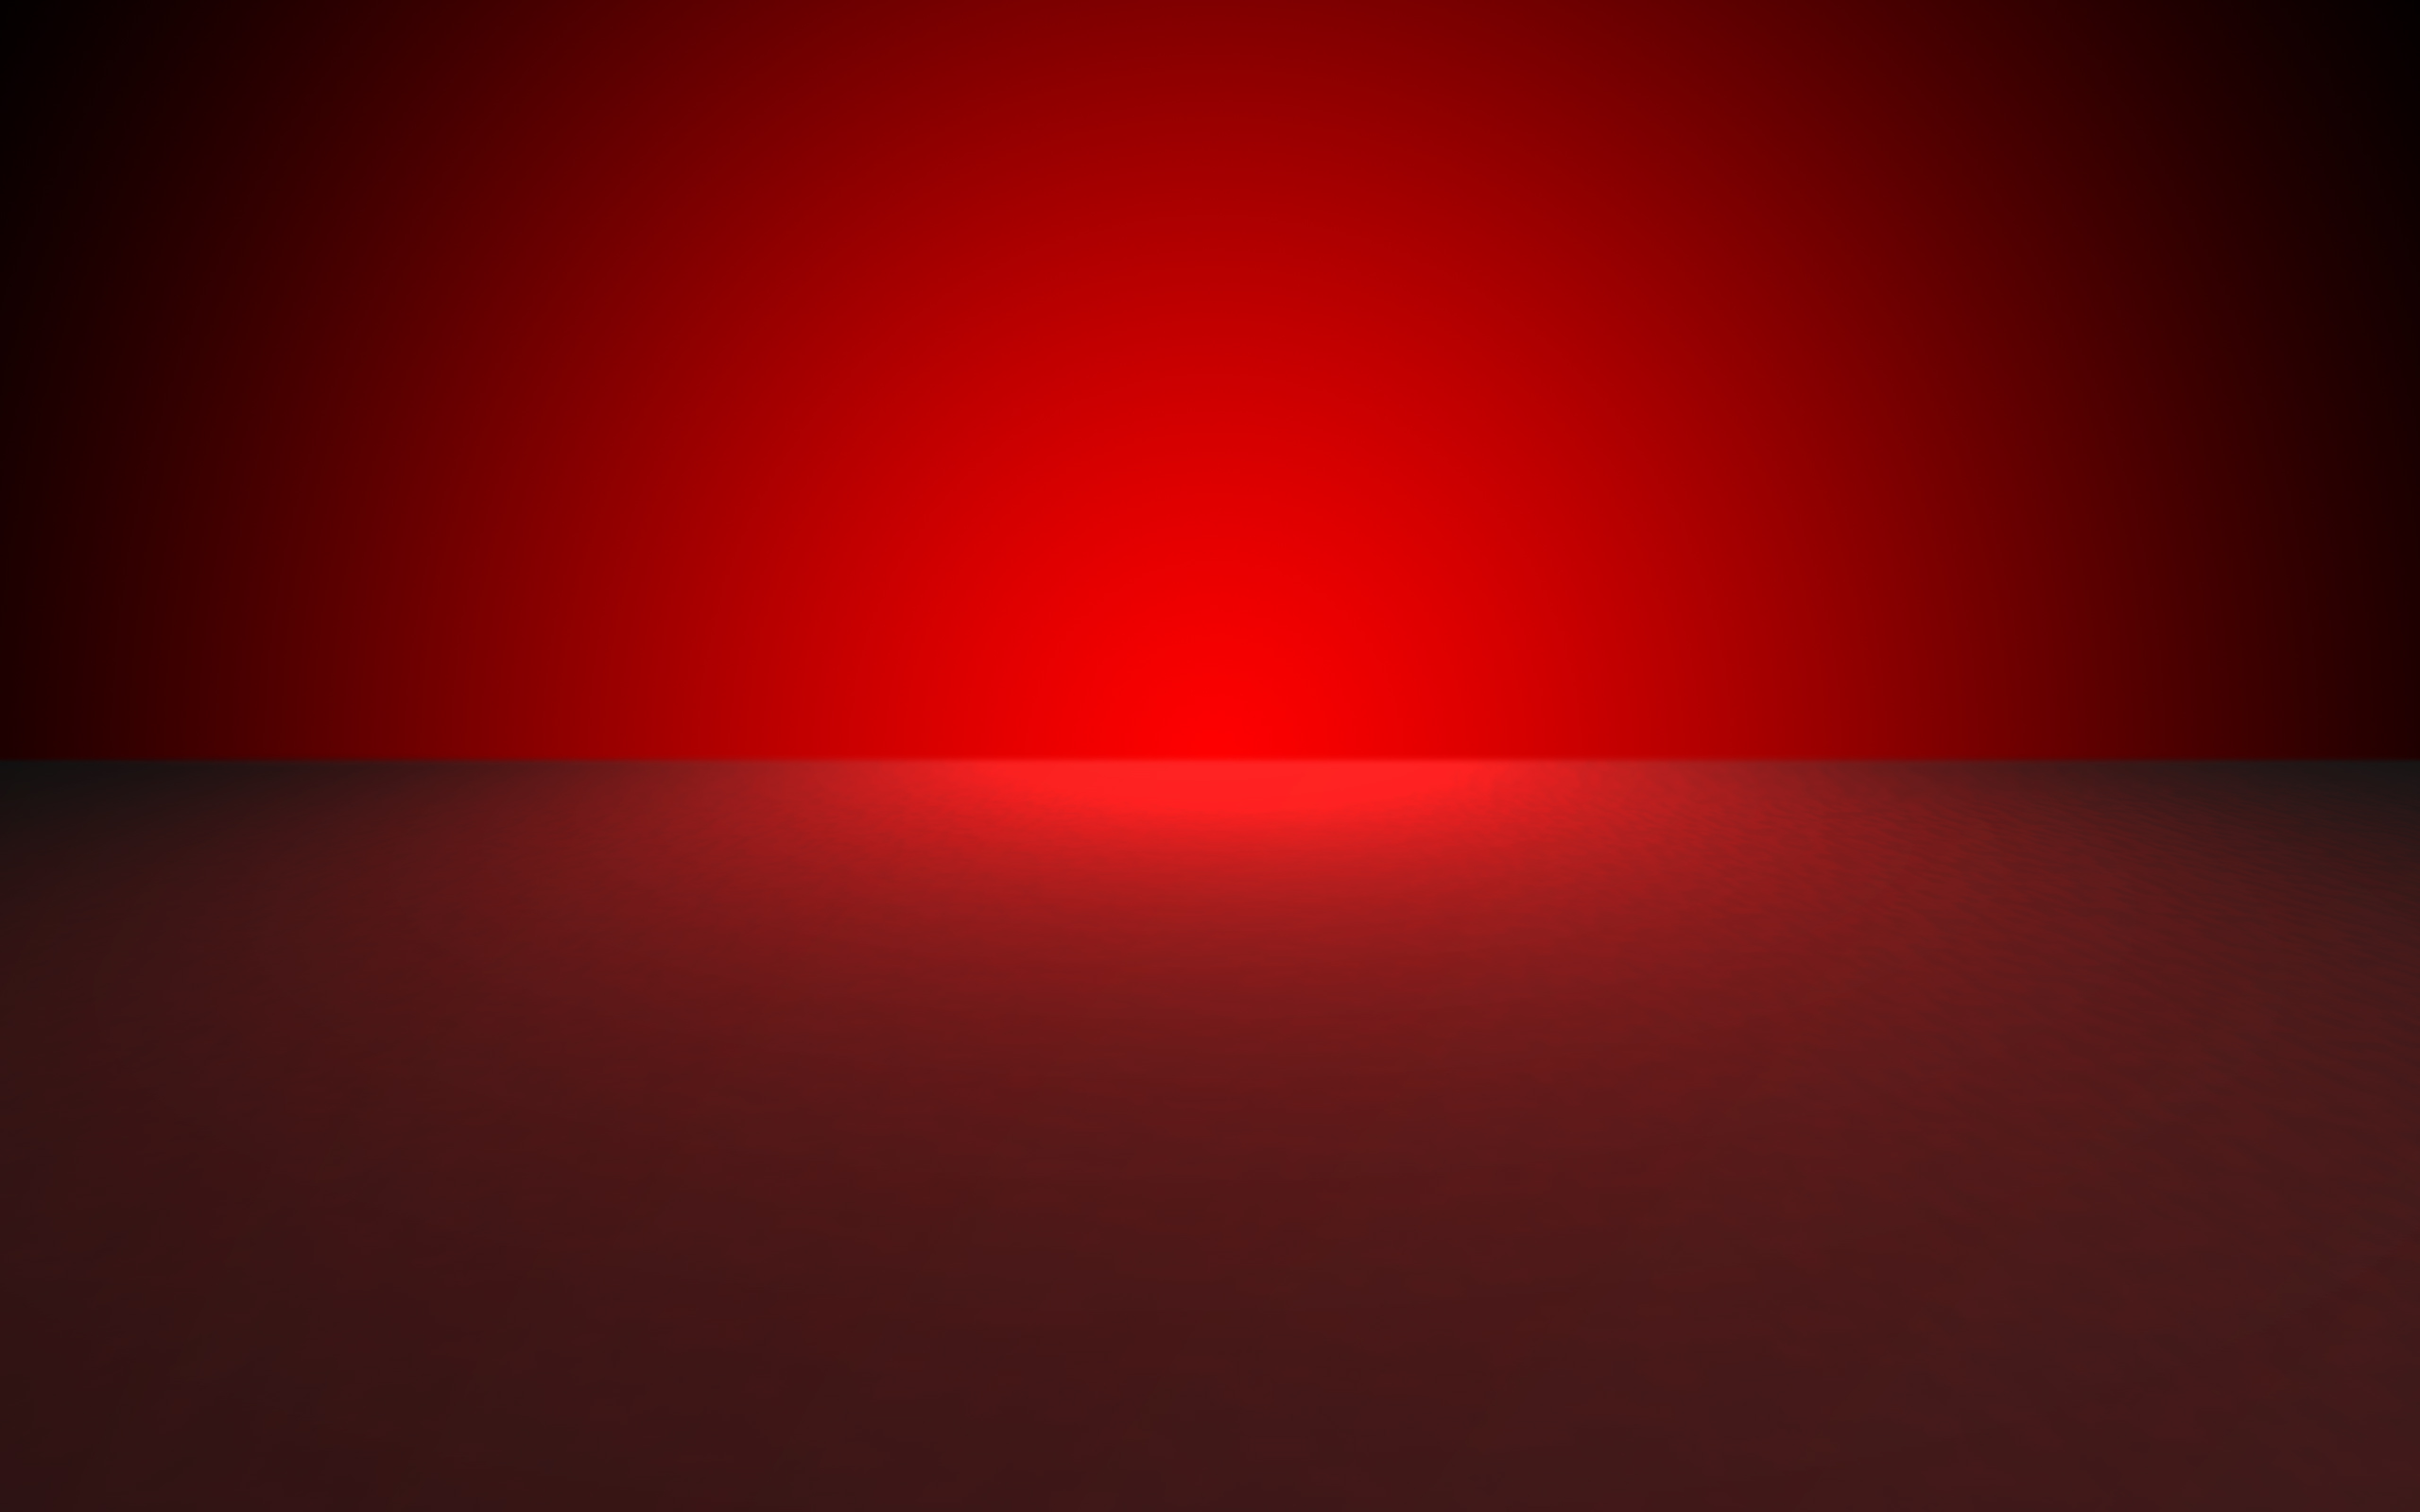 Red and Black 25 Cool Backgrounds